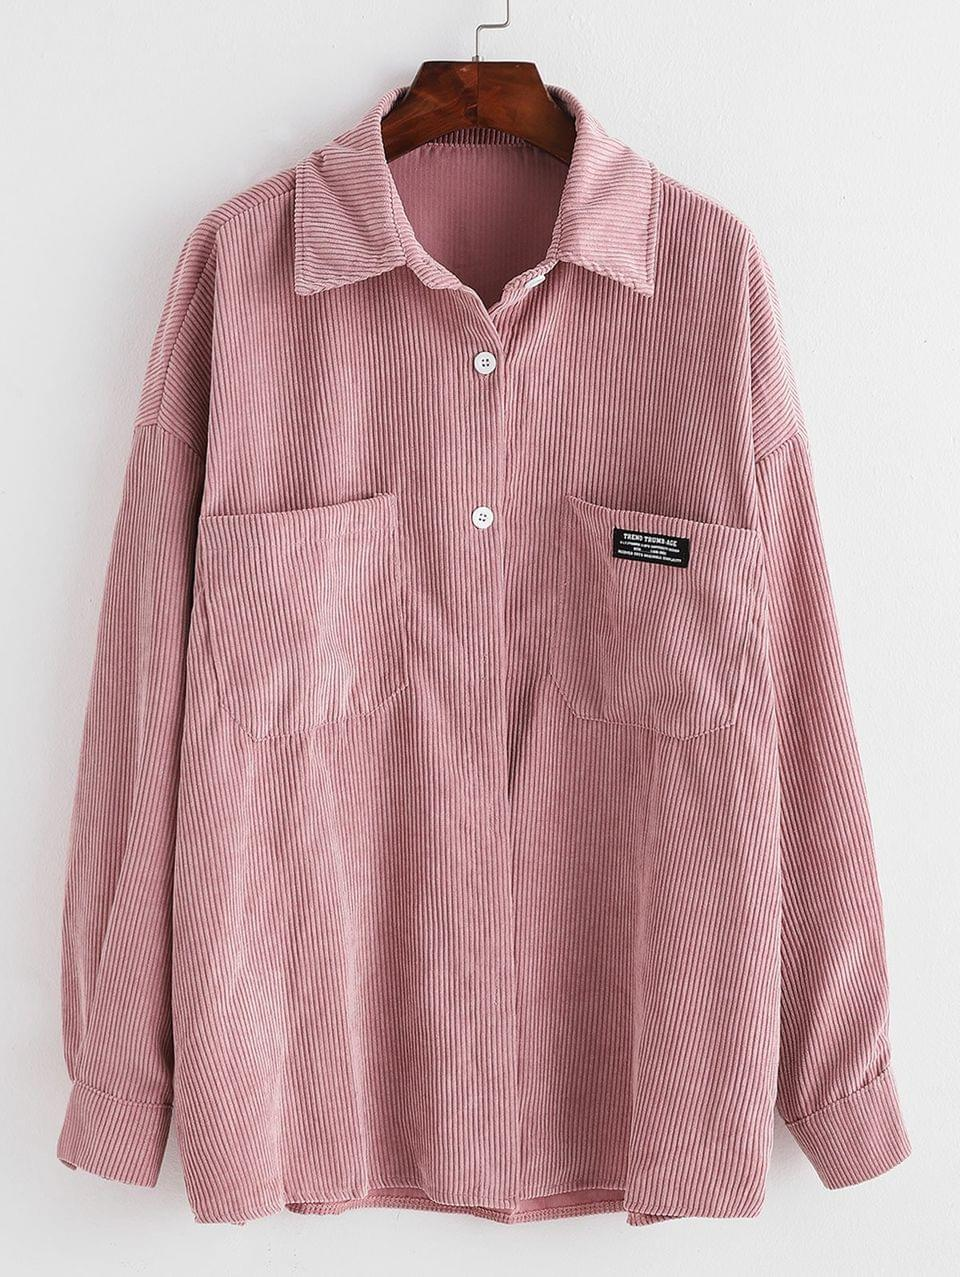 Women's Label Front Pocket Oversized Corduroy Shirt - Pink